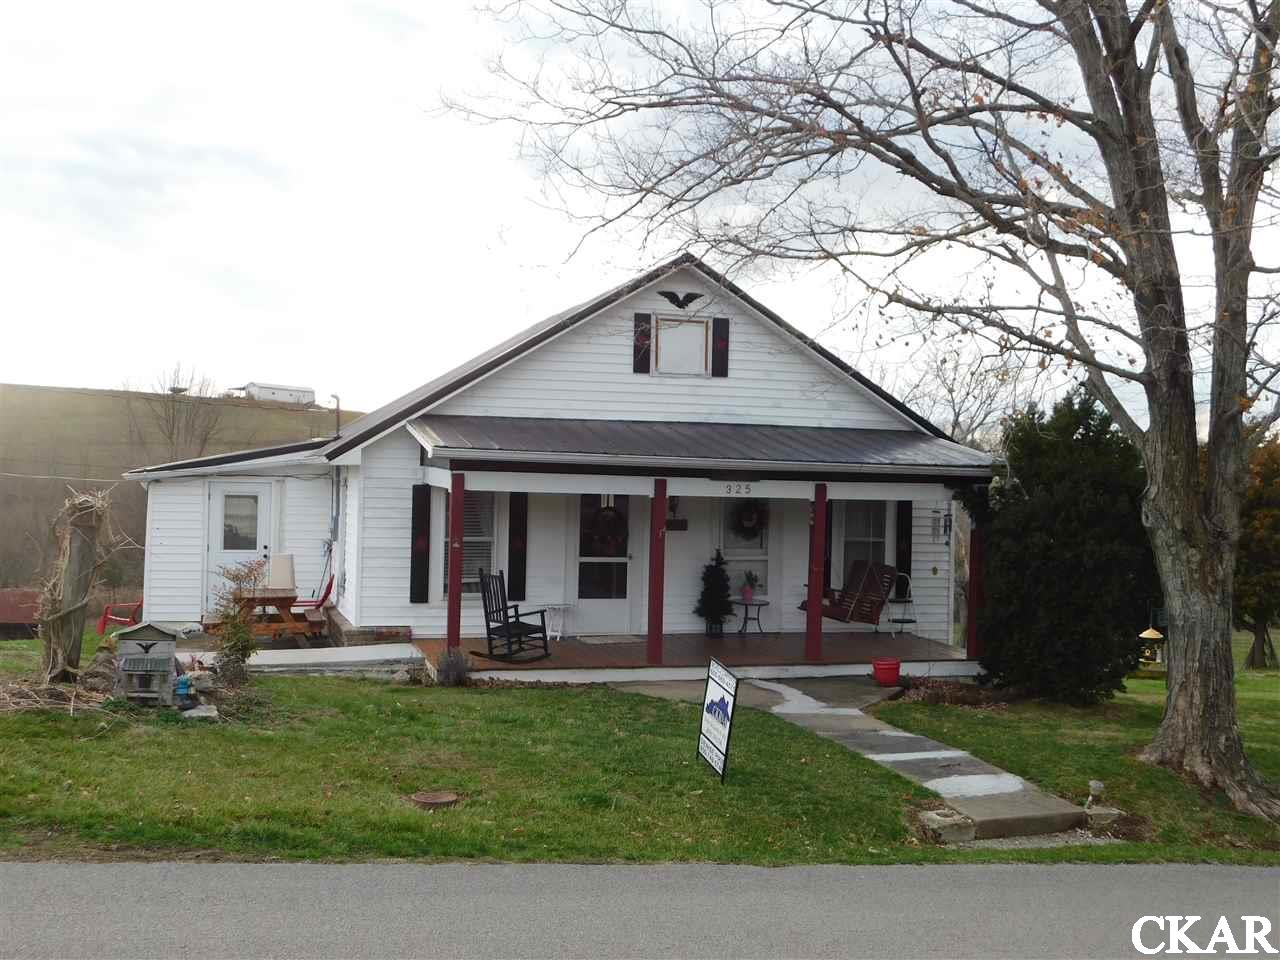 Photo of 325 Martin Trail  Stanford  KY